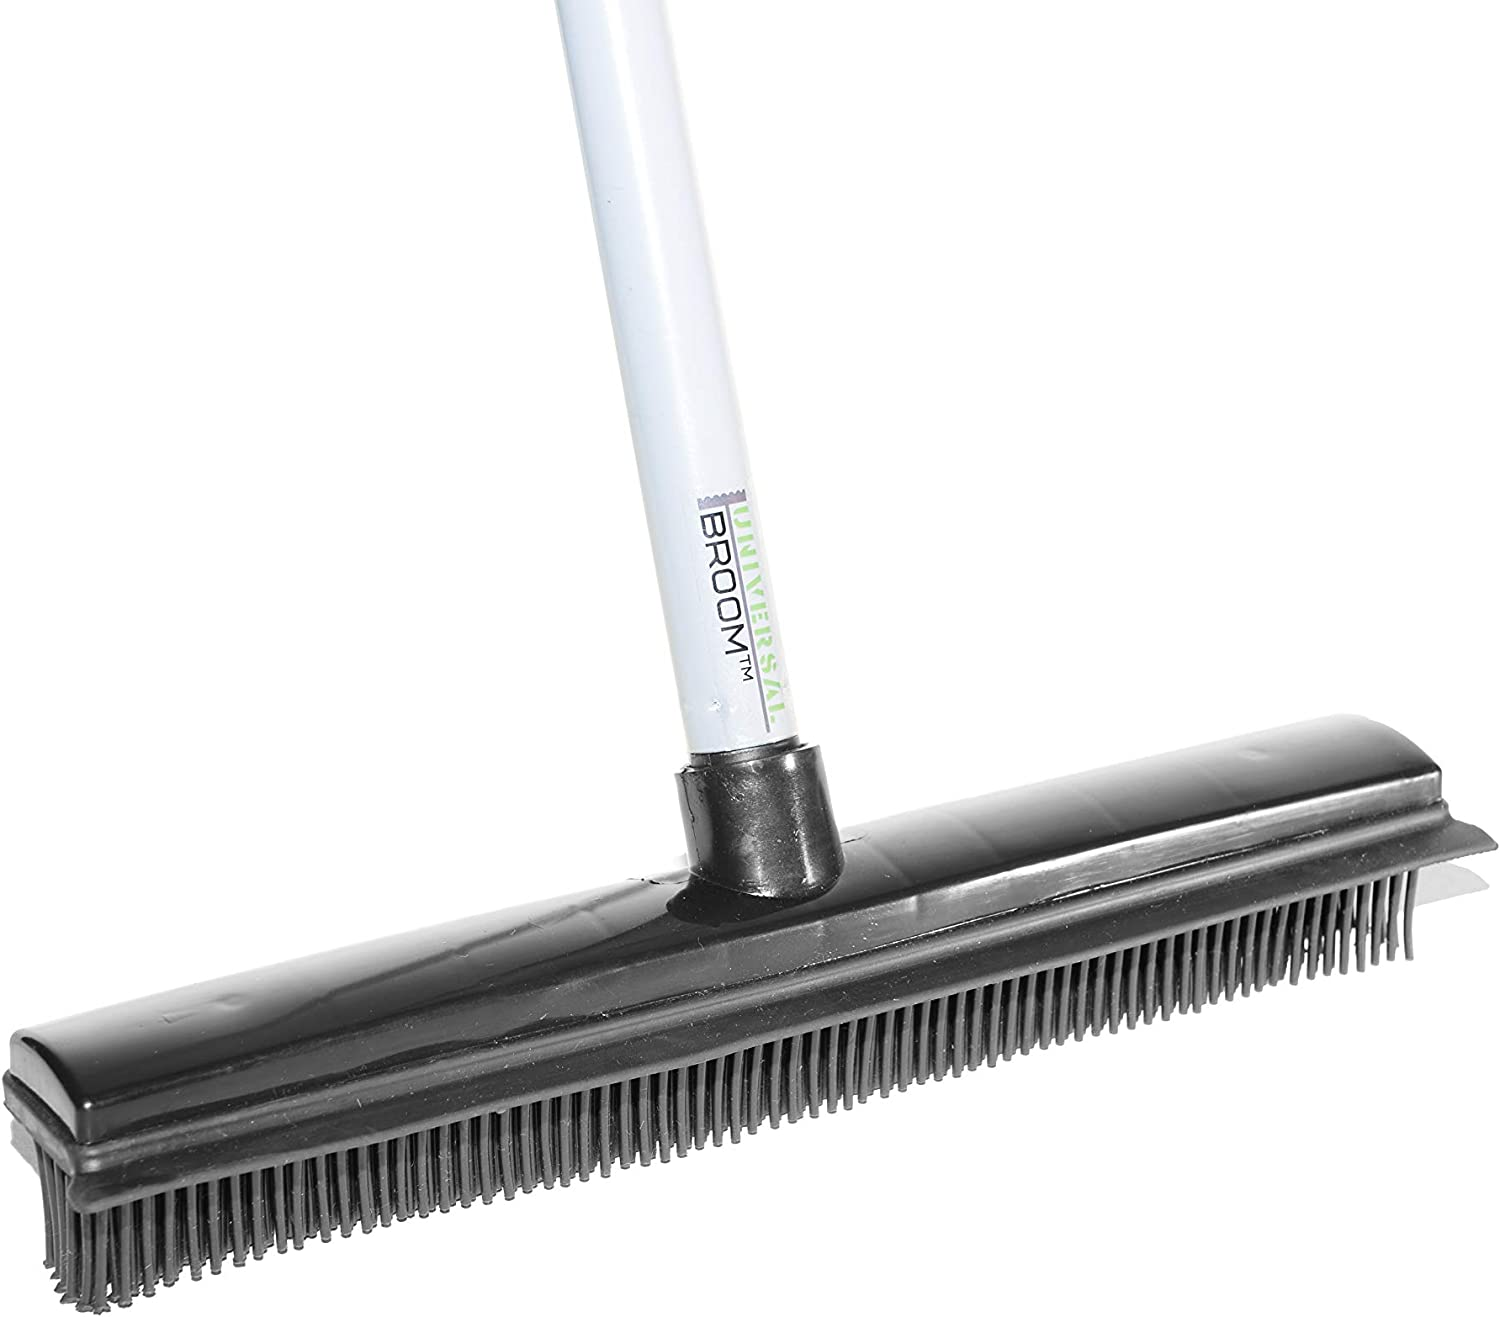 Universal Broom - Pet Hair Broom with Rubber Broom Head & Squeegee - Adjustable to 5ft - Washable Rubber Broom for Pet Hair, Dirt & Spills - Carpet Rake to Fluff Carpet, Cleans Wood, Tile and Windows